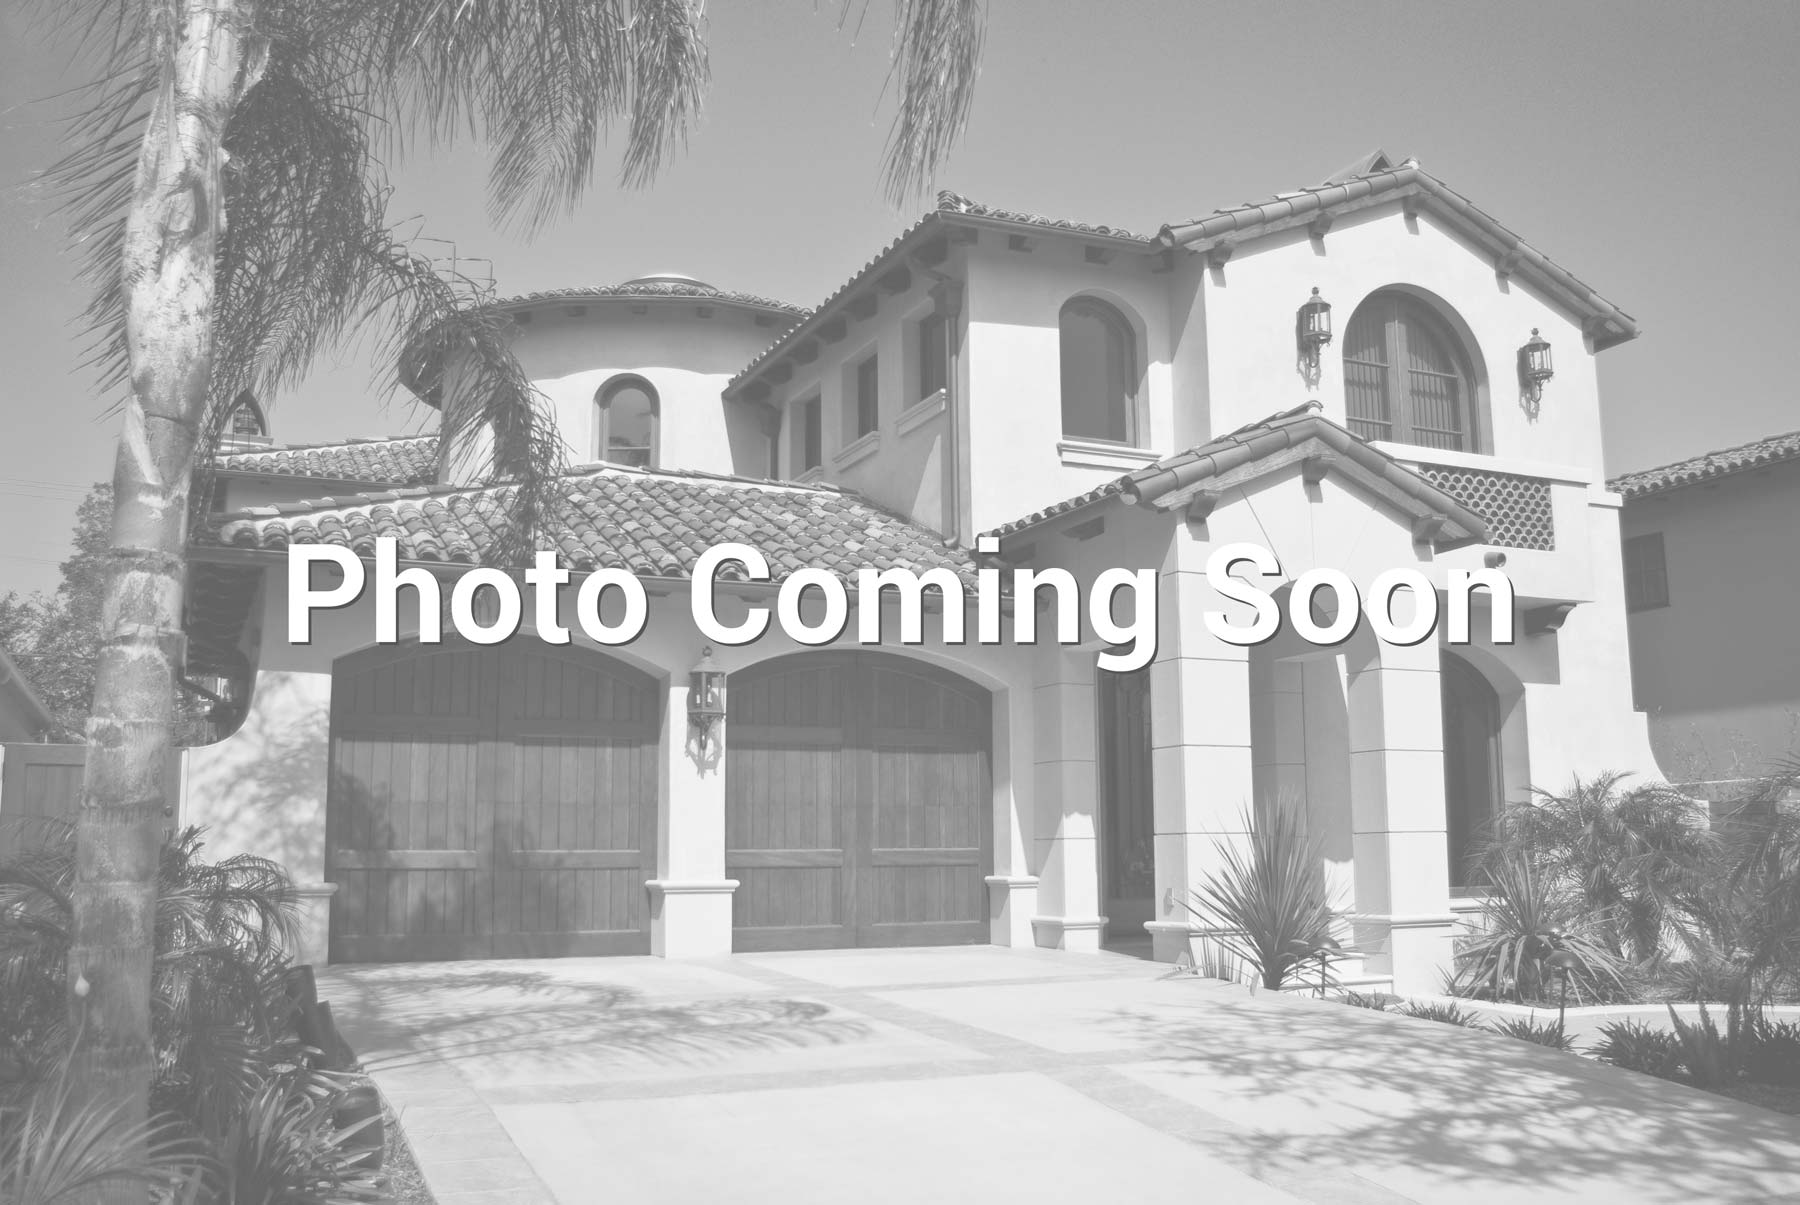 $735,000 - 4Br/3Ba - Home for Sale in Mcdowell Mountain Ranch Parcel P 1, Scottsdale